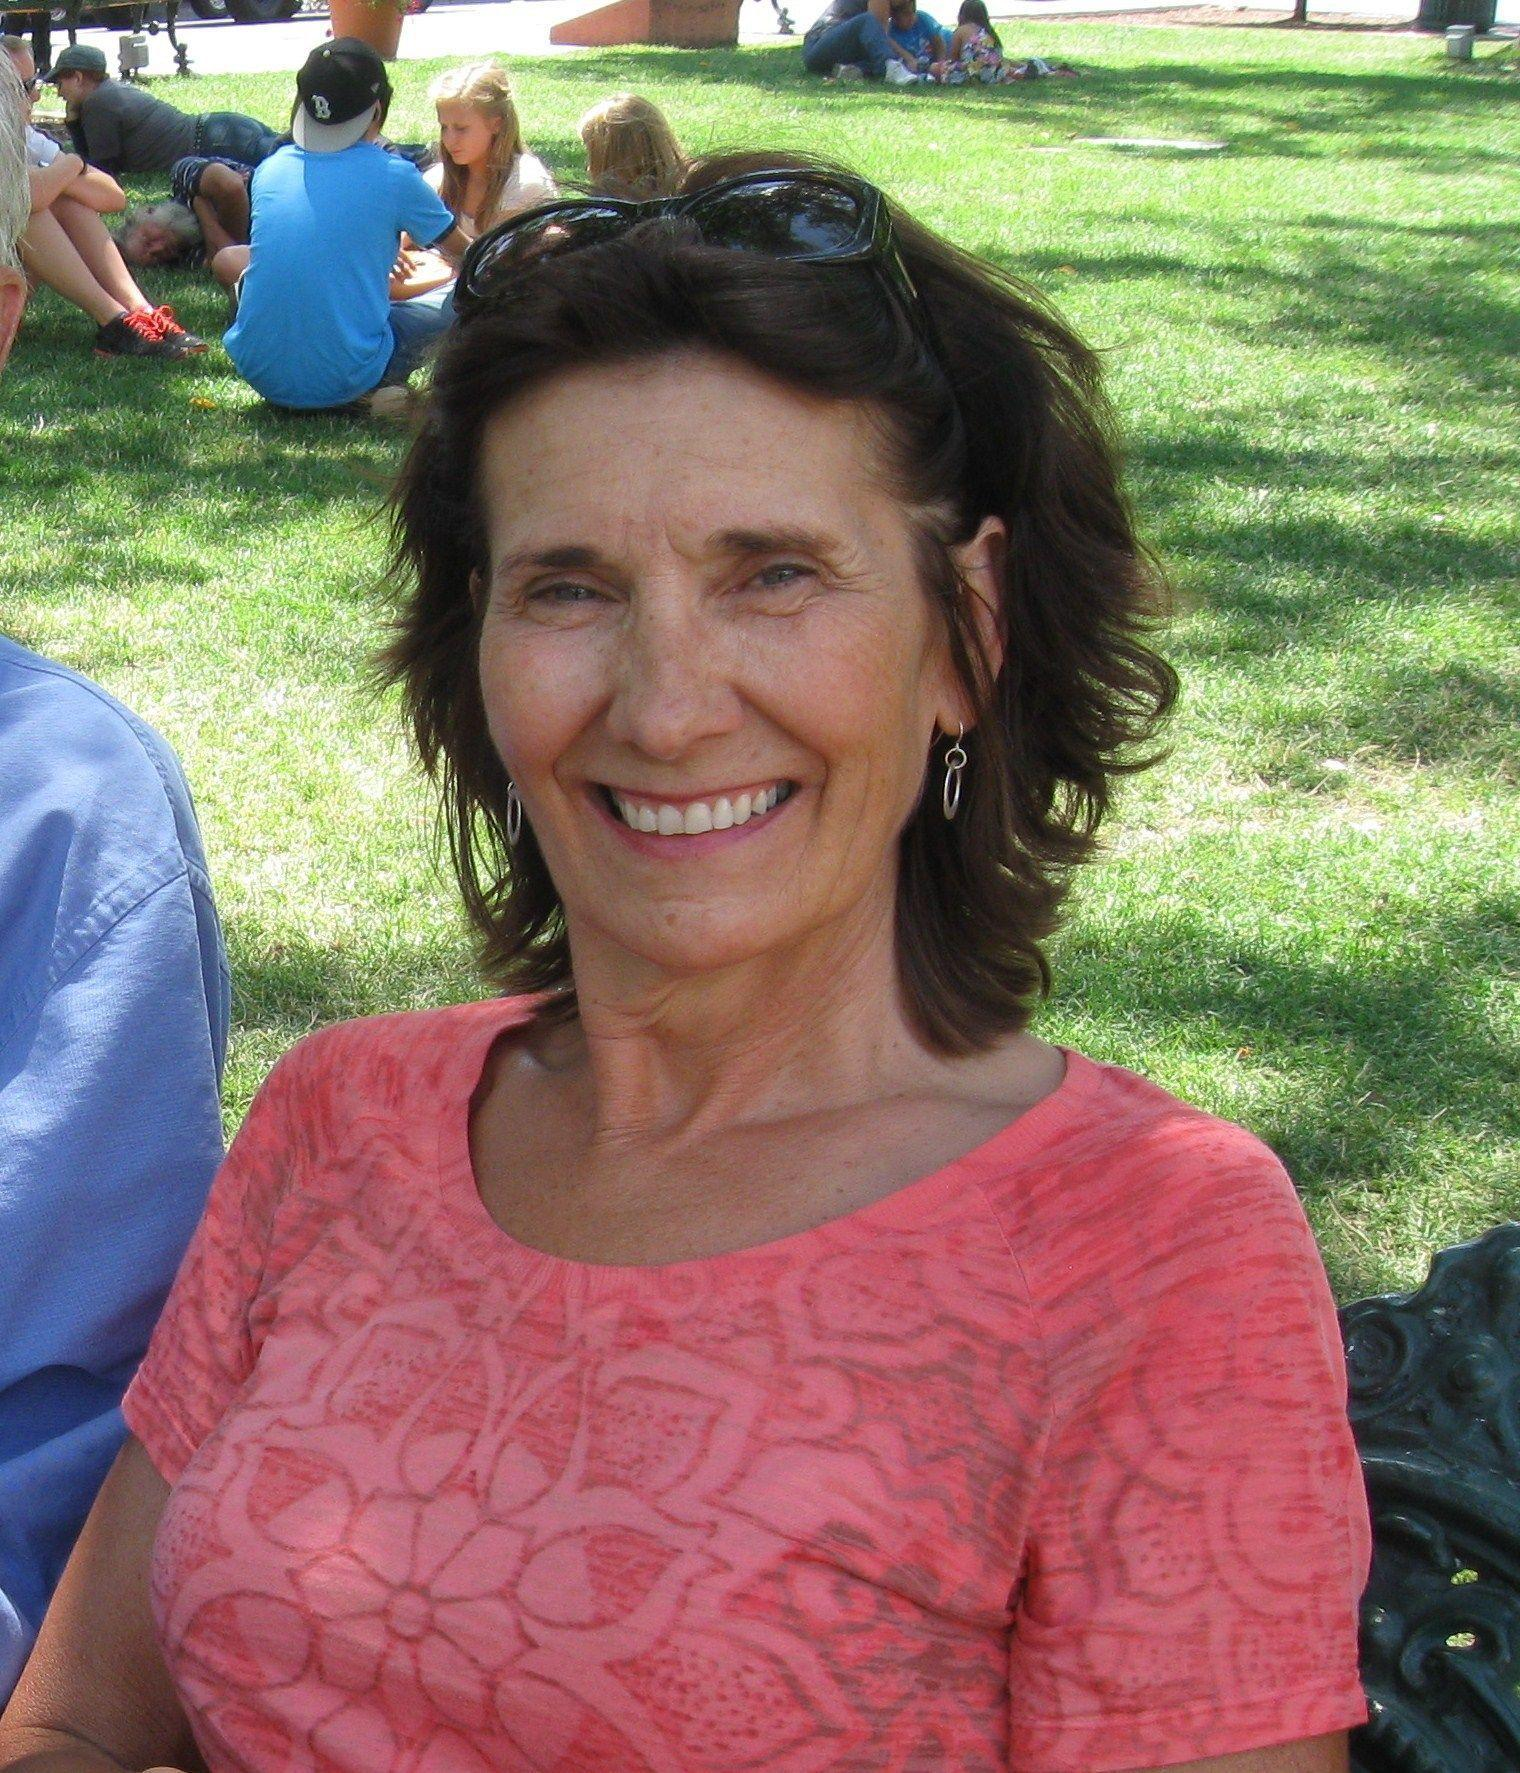 Personals in sisters oregon Search - The Austin Chronicle